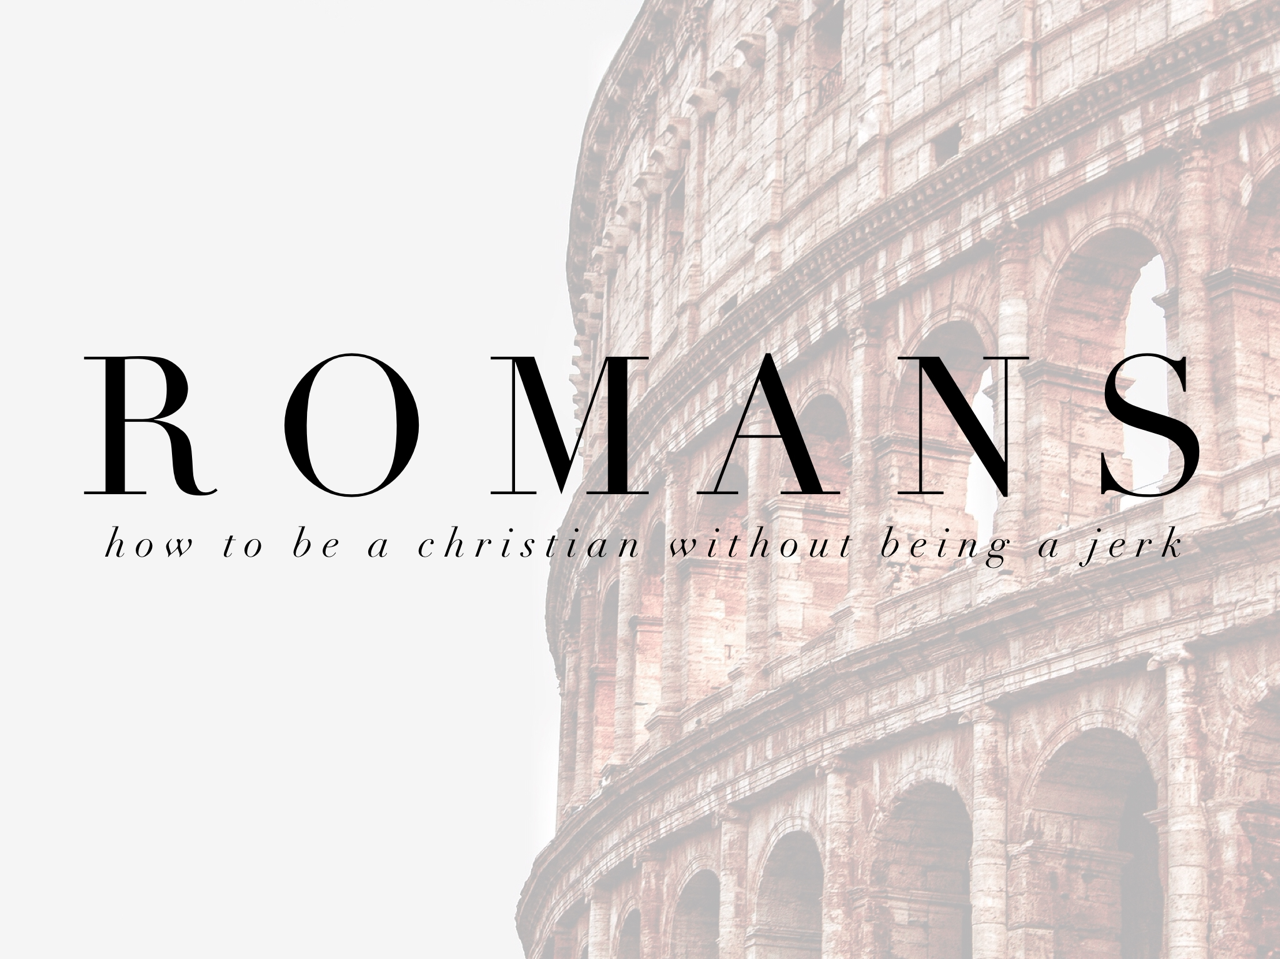 Romans: How to Be a Christian Without Being a Jerk